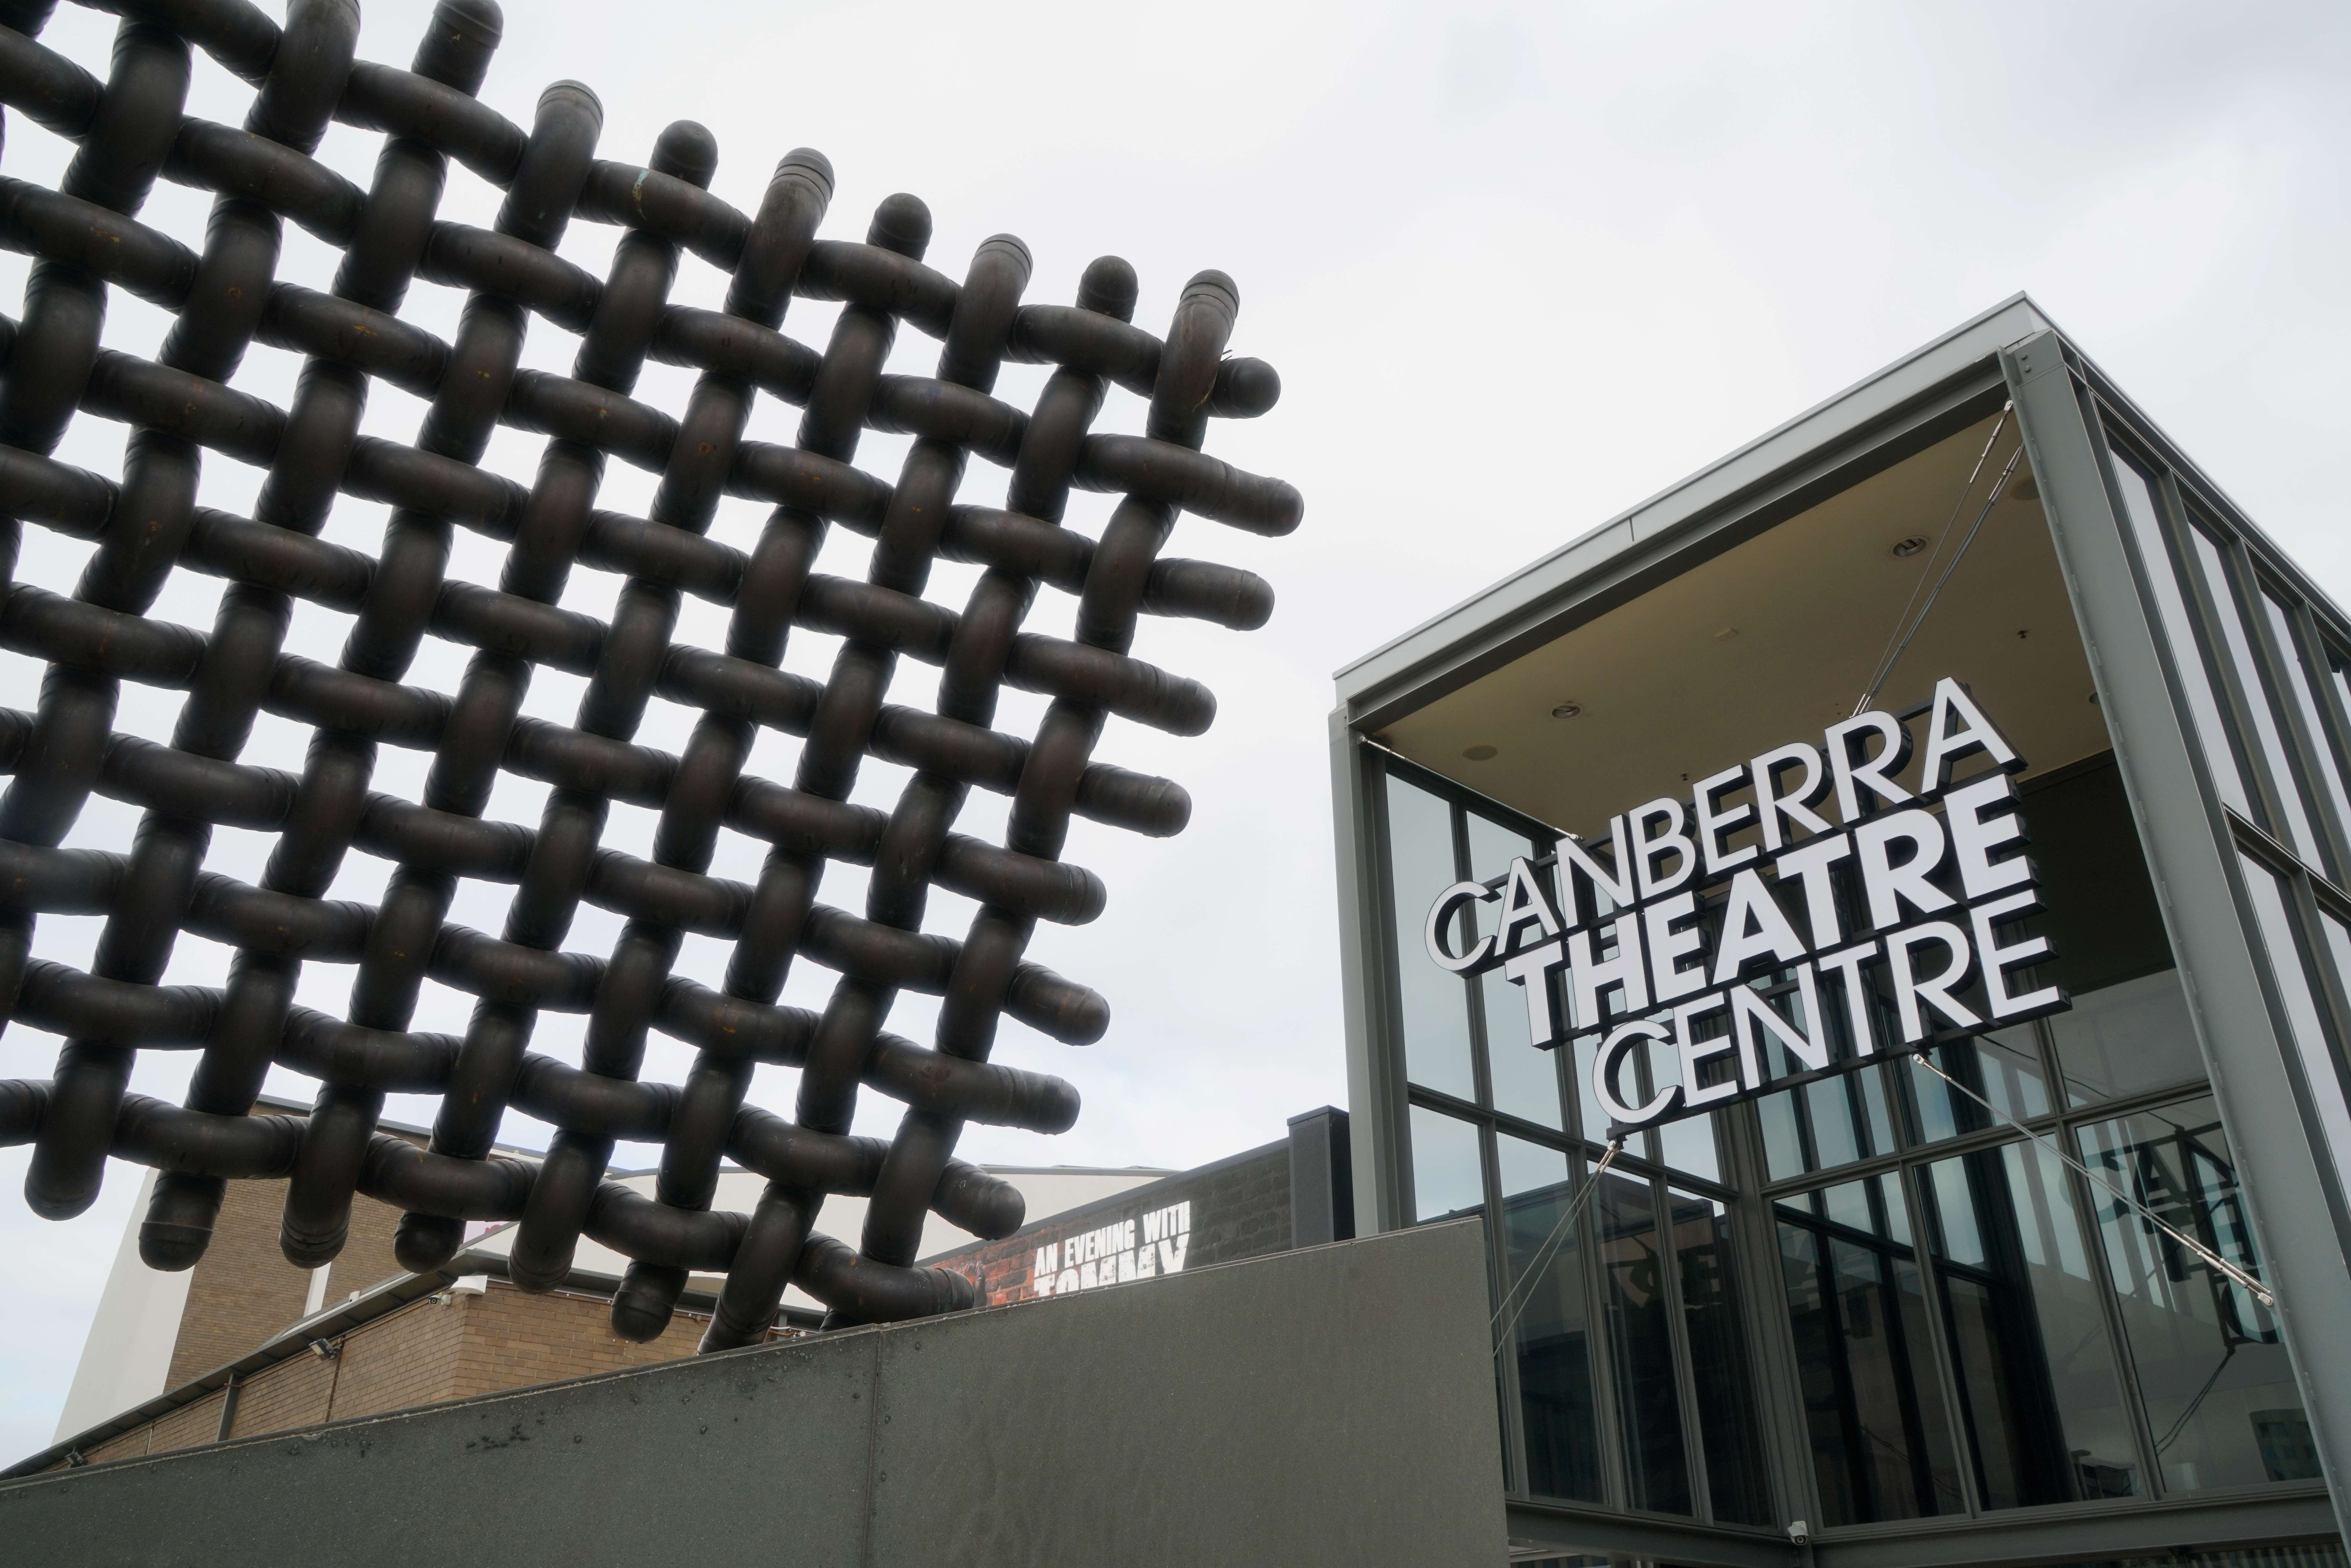 Entrance to the Canberra Theatre Centre